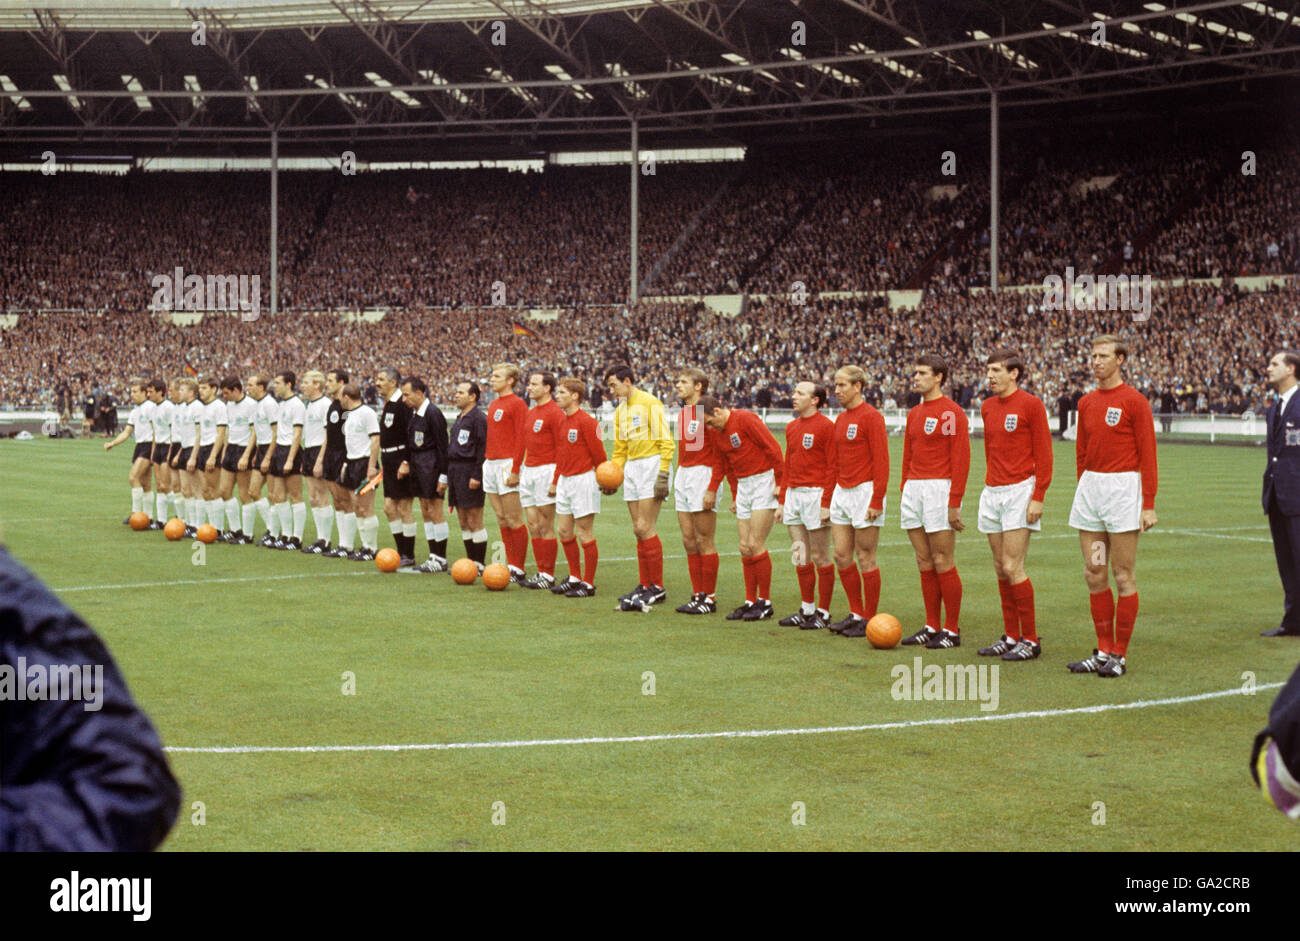 1966 world cup final - photo #8